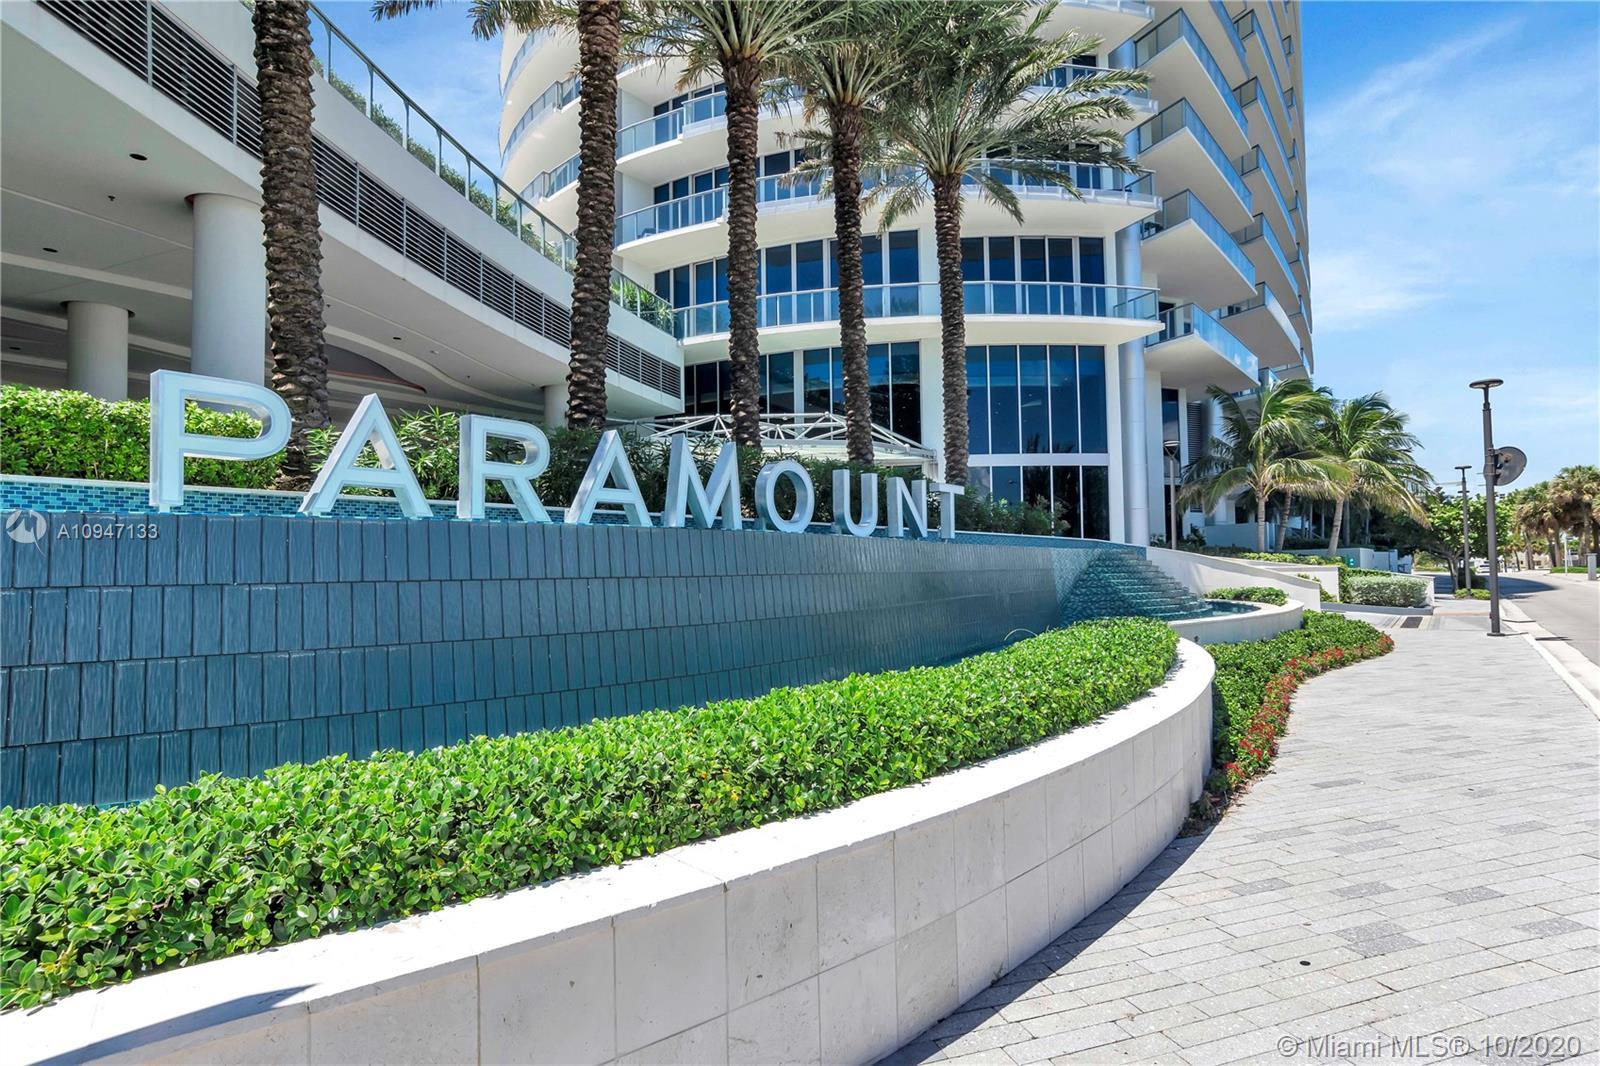 Espectacular New Oceanfront Ultra-Luxury condo on Fort Lauderdale Beach. 2 Bedrooms, 2.5 Baths with